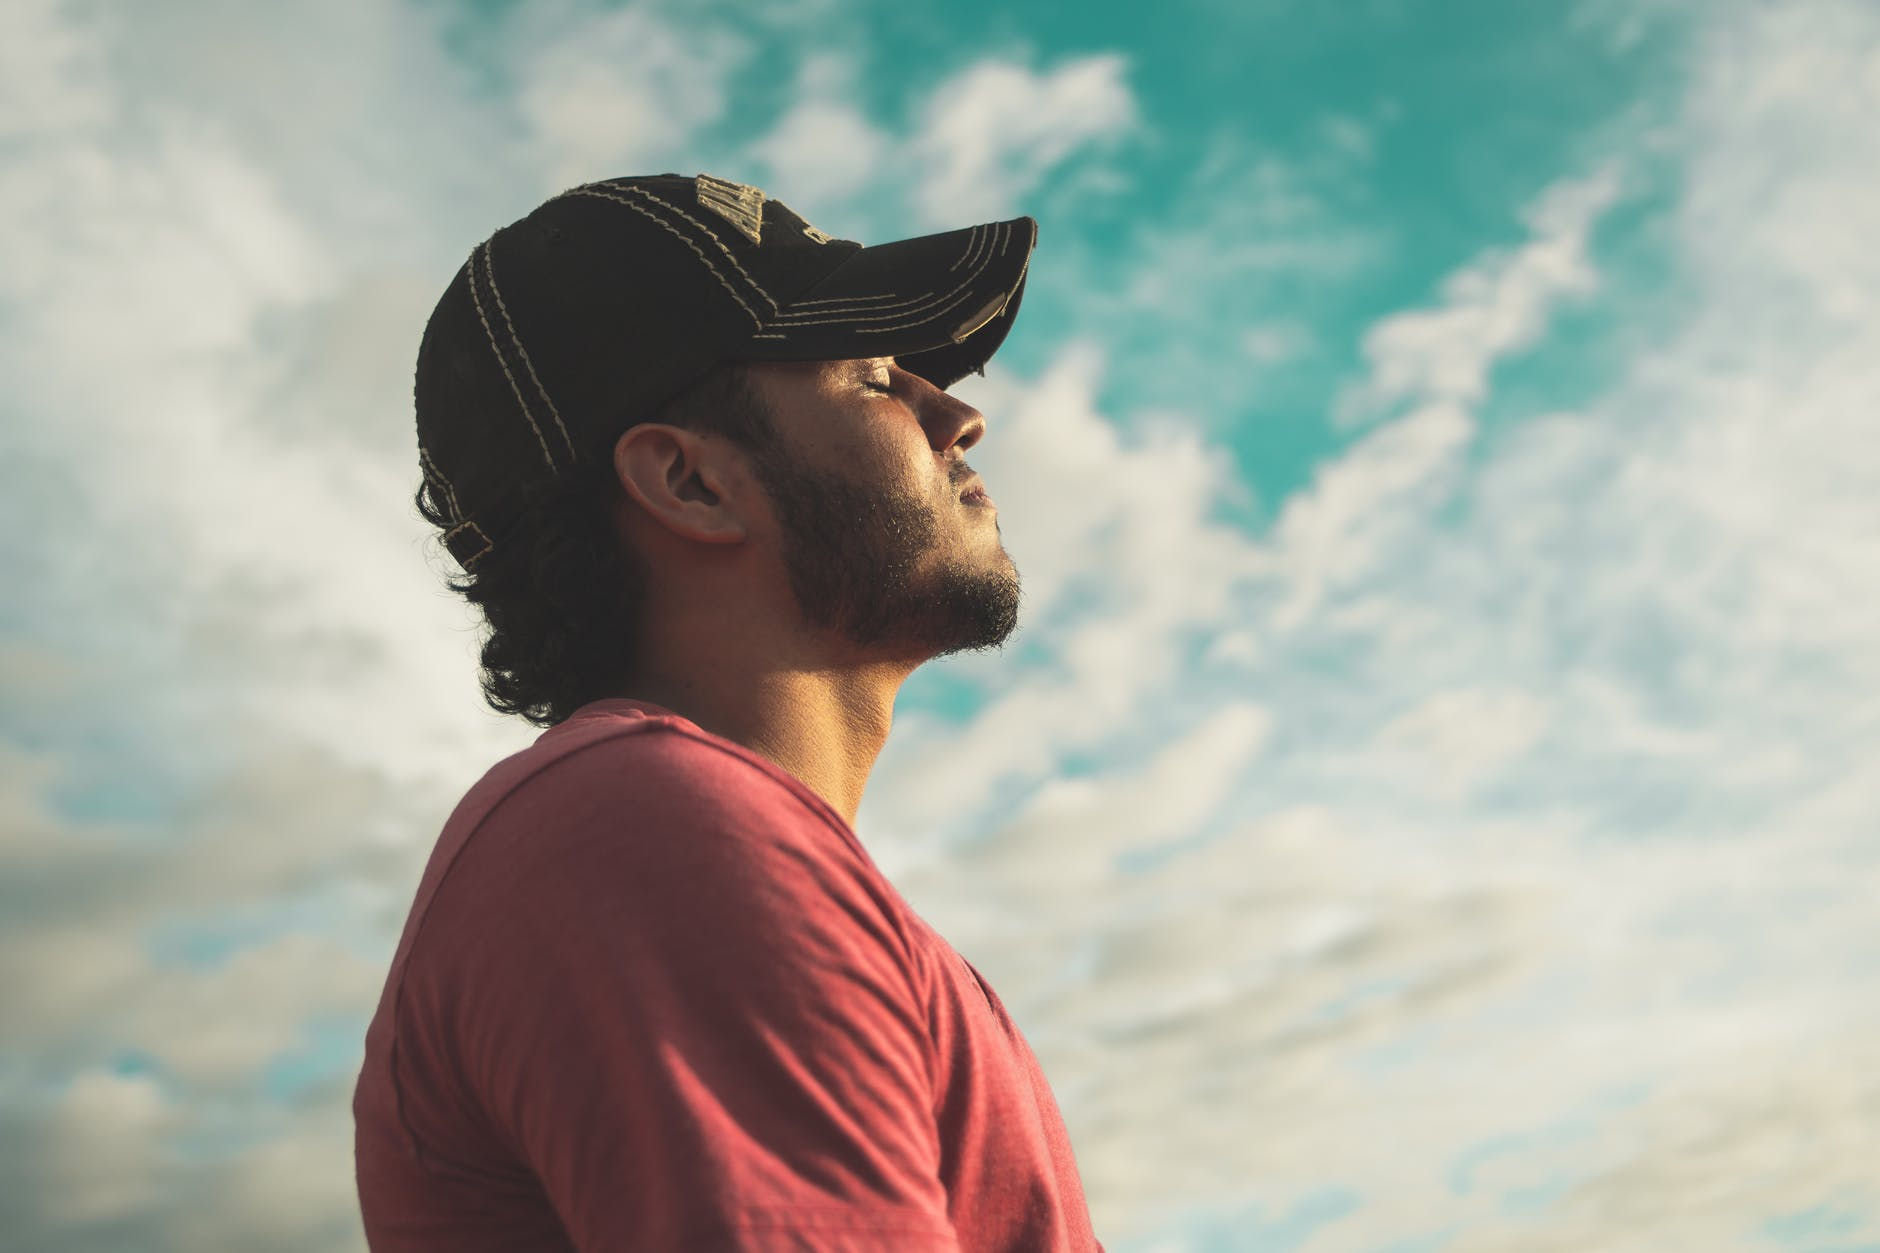 man wearing black cap with eyes closed under cloudy sky